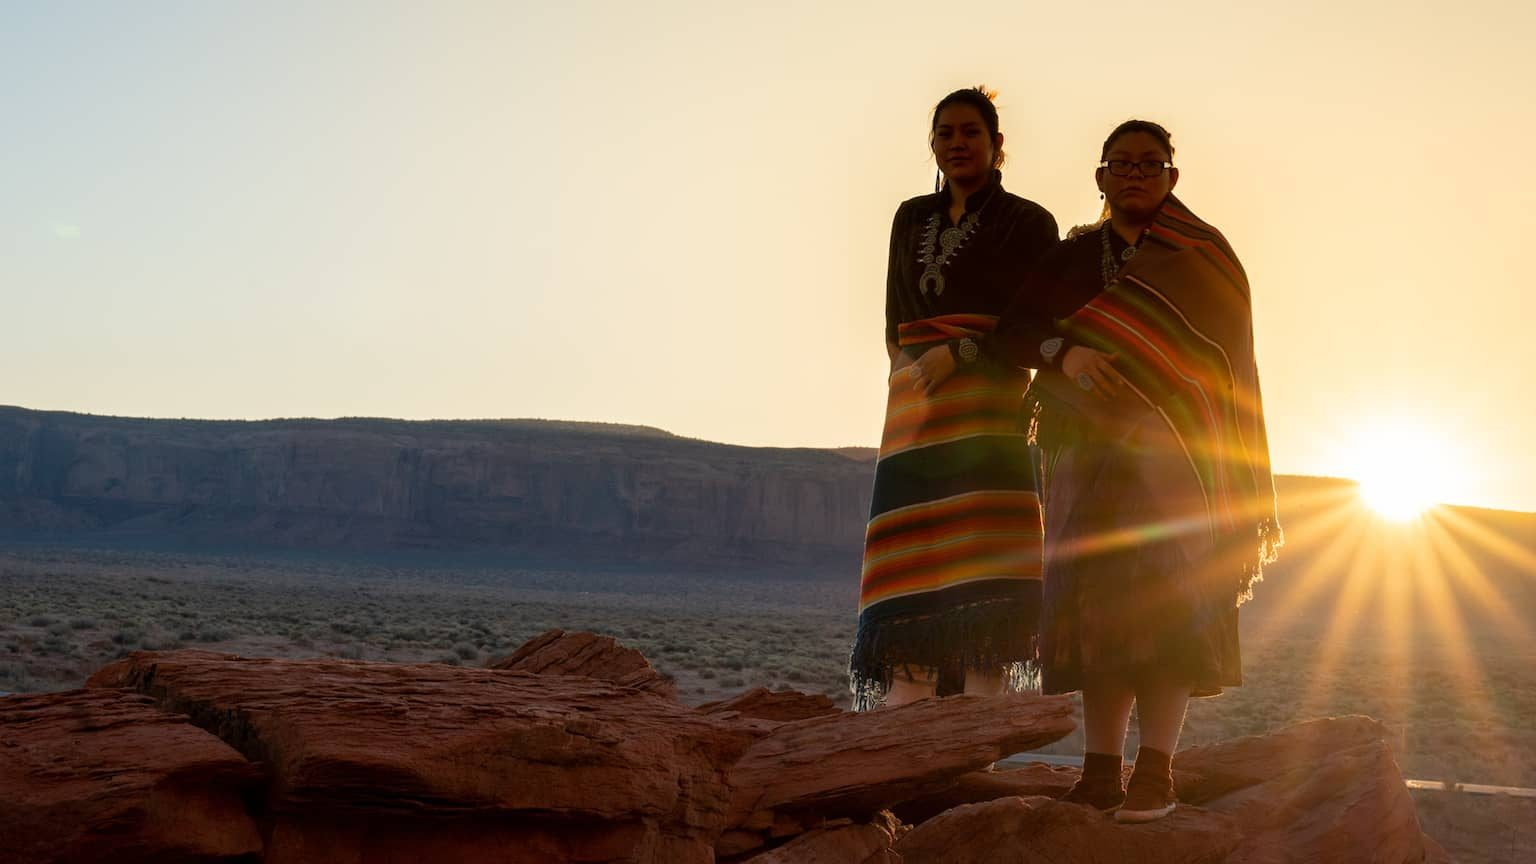 Two Indigenous women standing on a mesa with a sunset in the background.